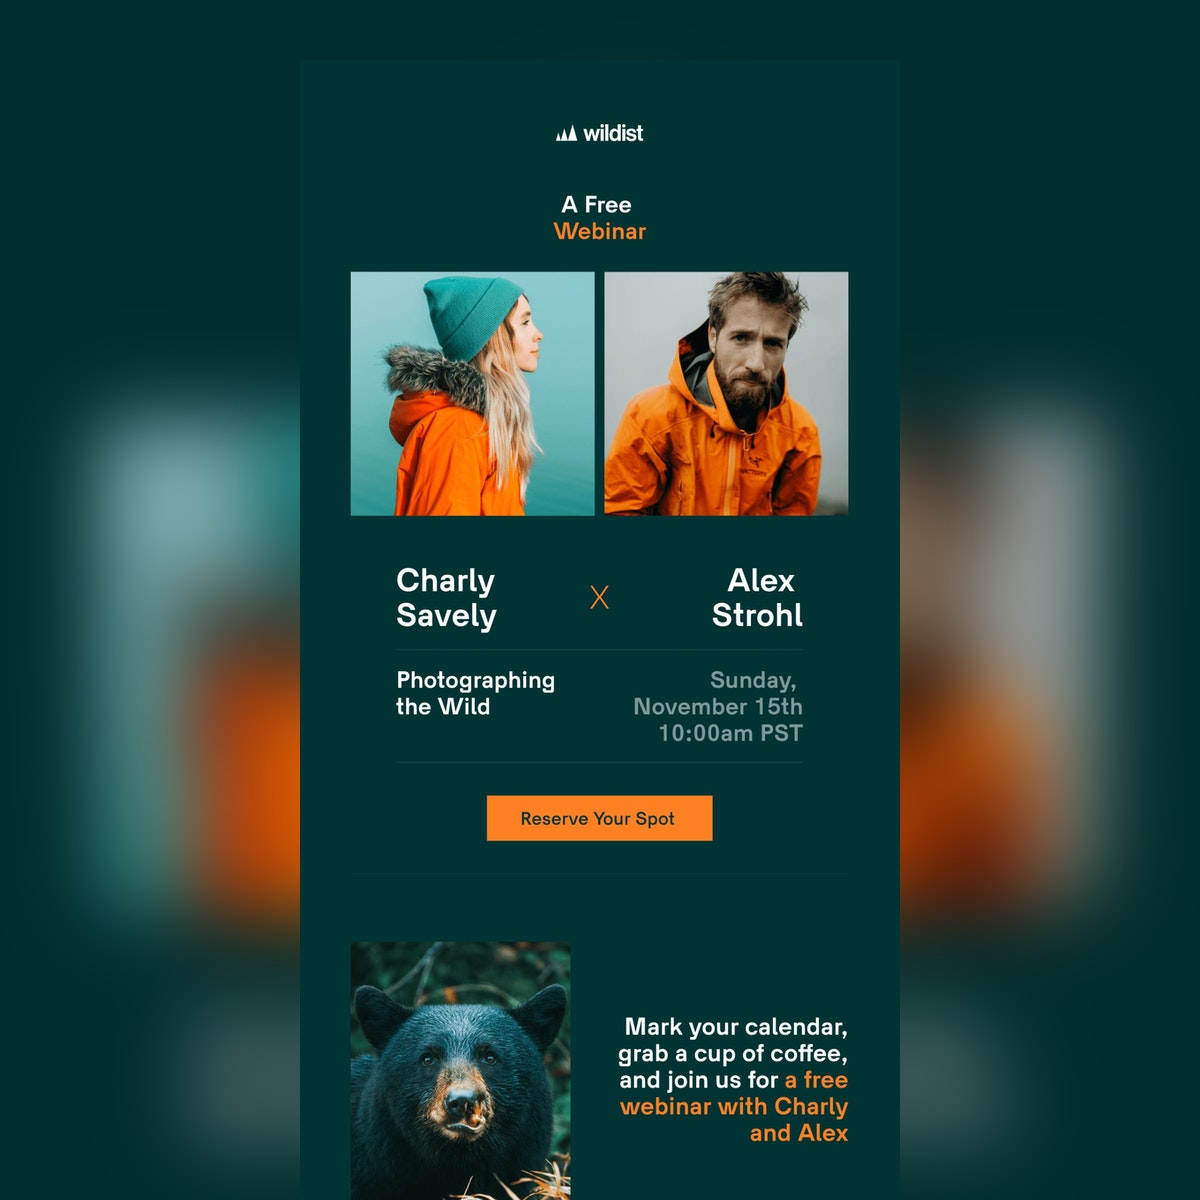 A Free Webinar with Alex Strohl and Charly Savely